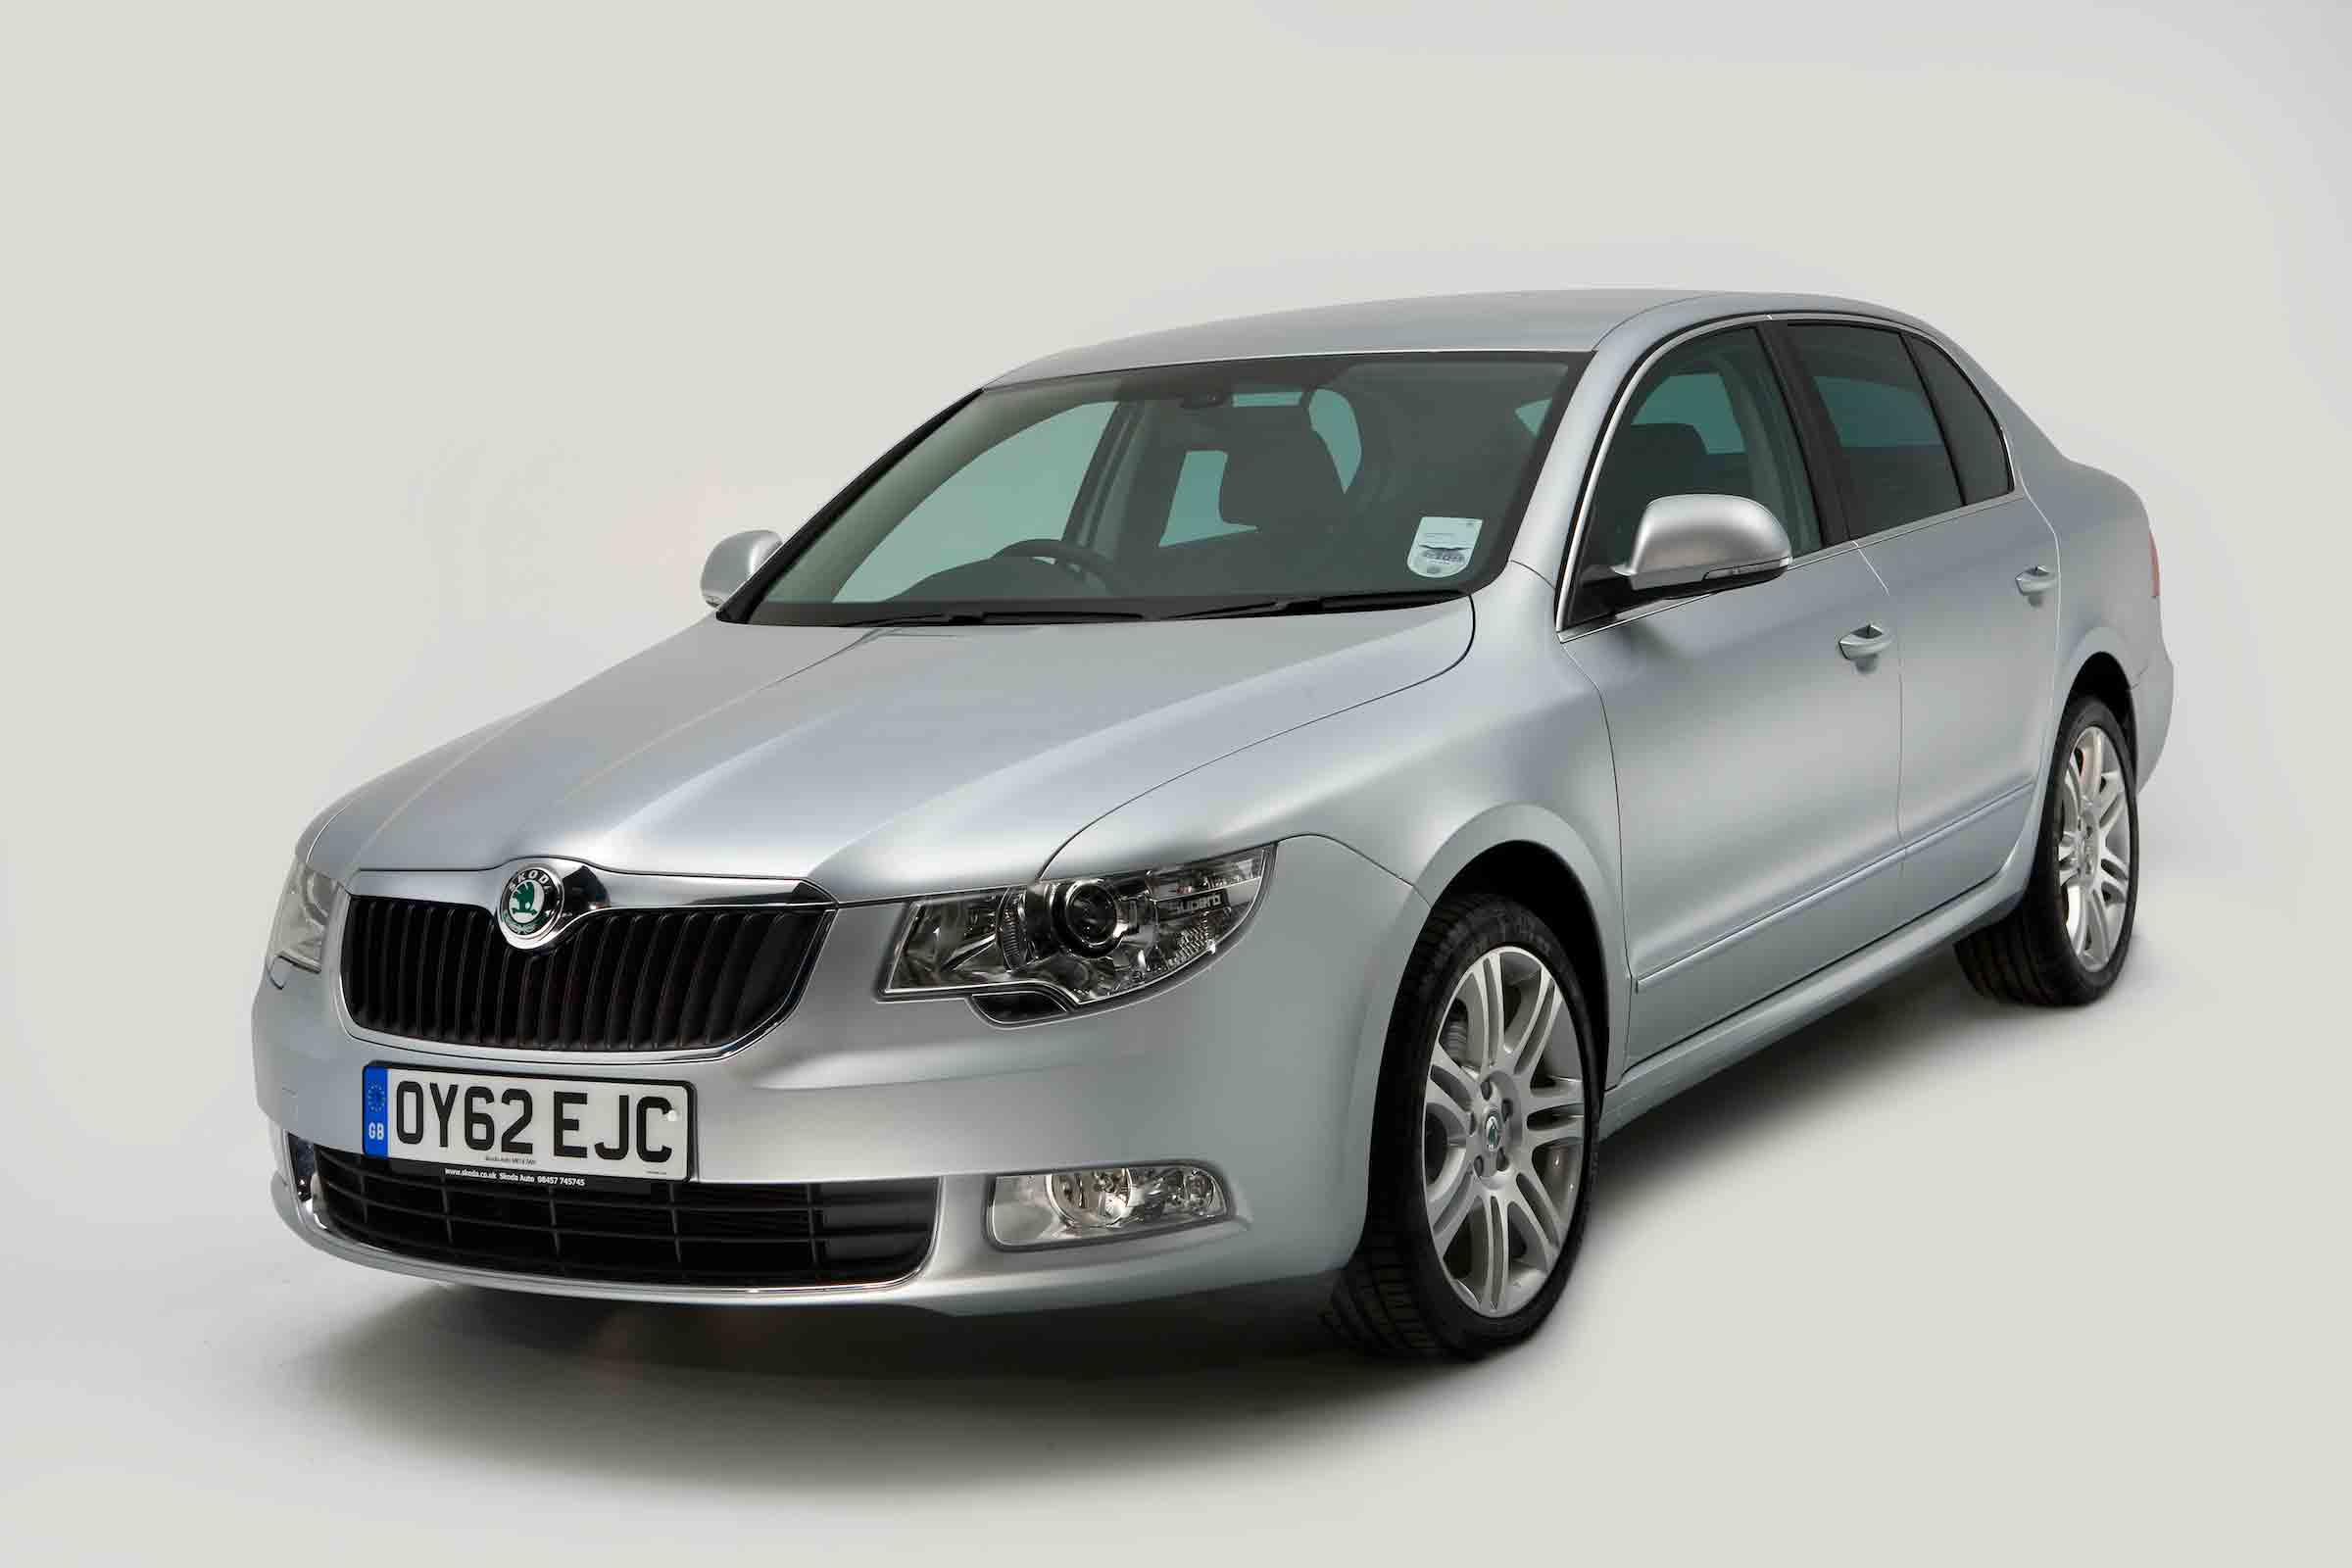 Used Skoda Superb Buying Guide 2008 2015 Mk2 Carbuyer